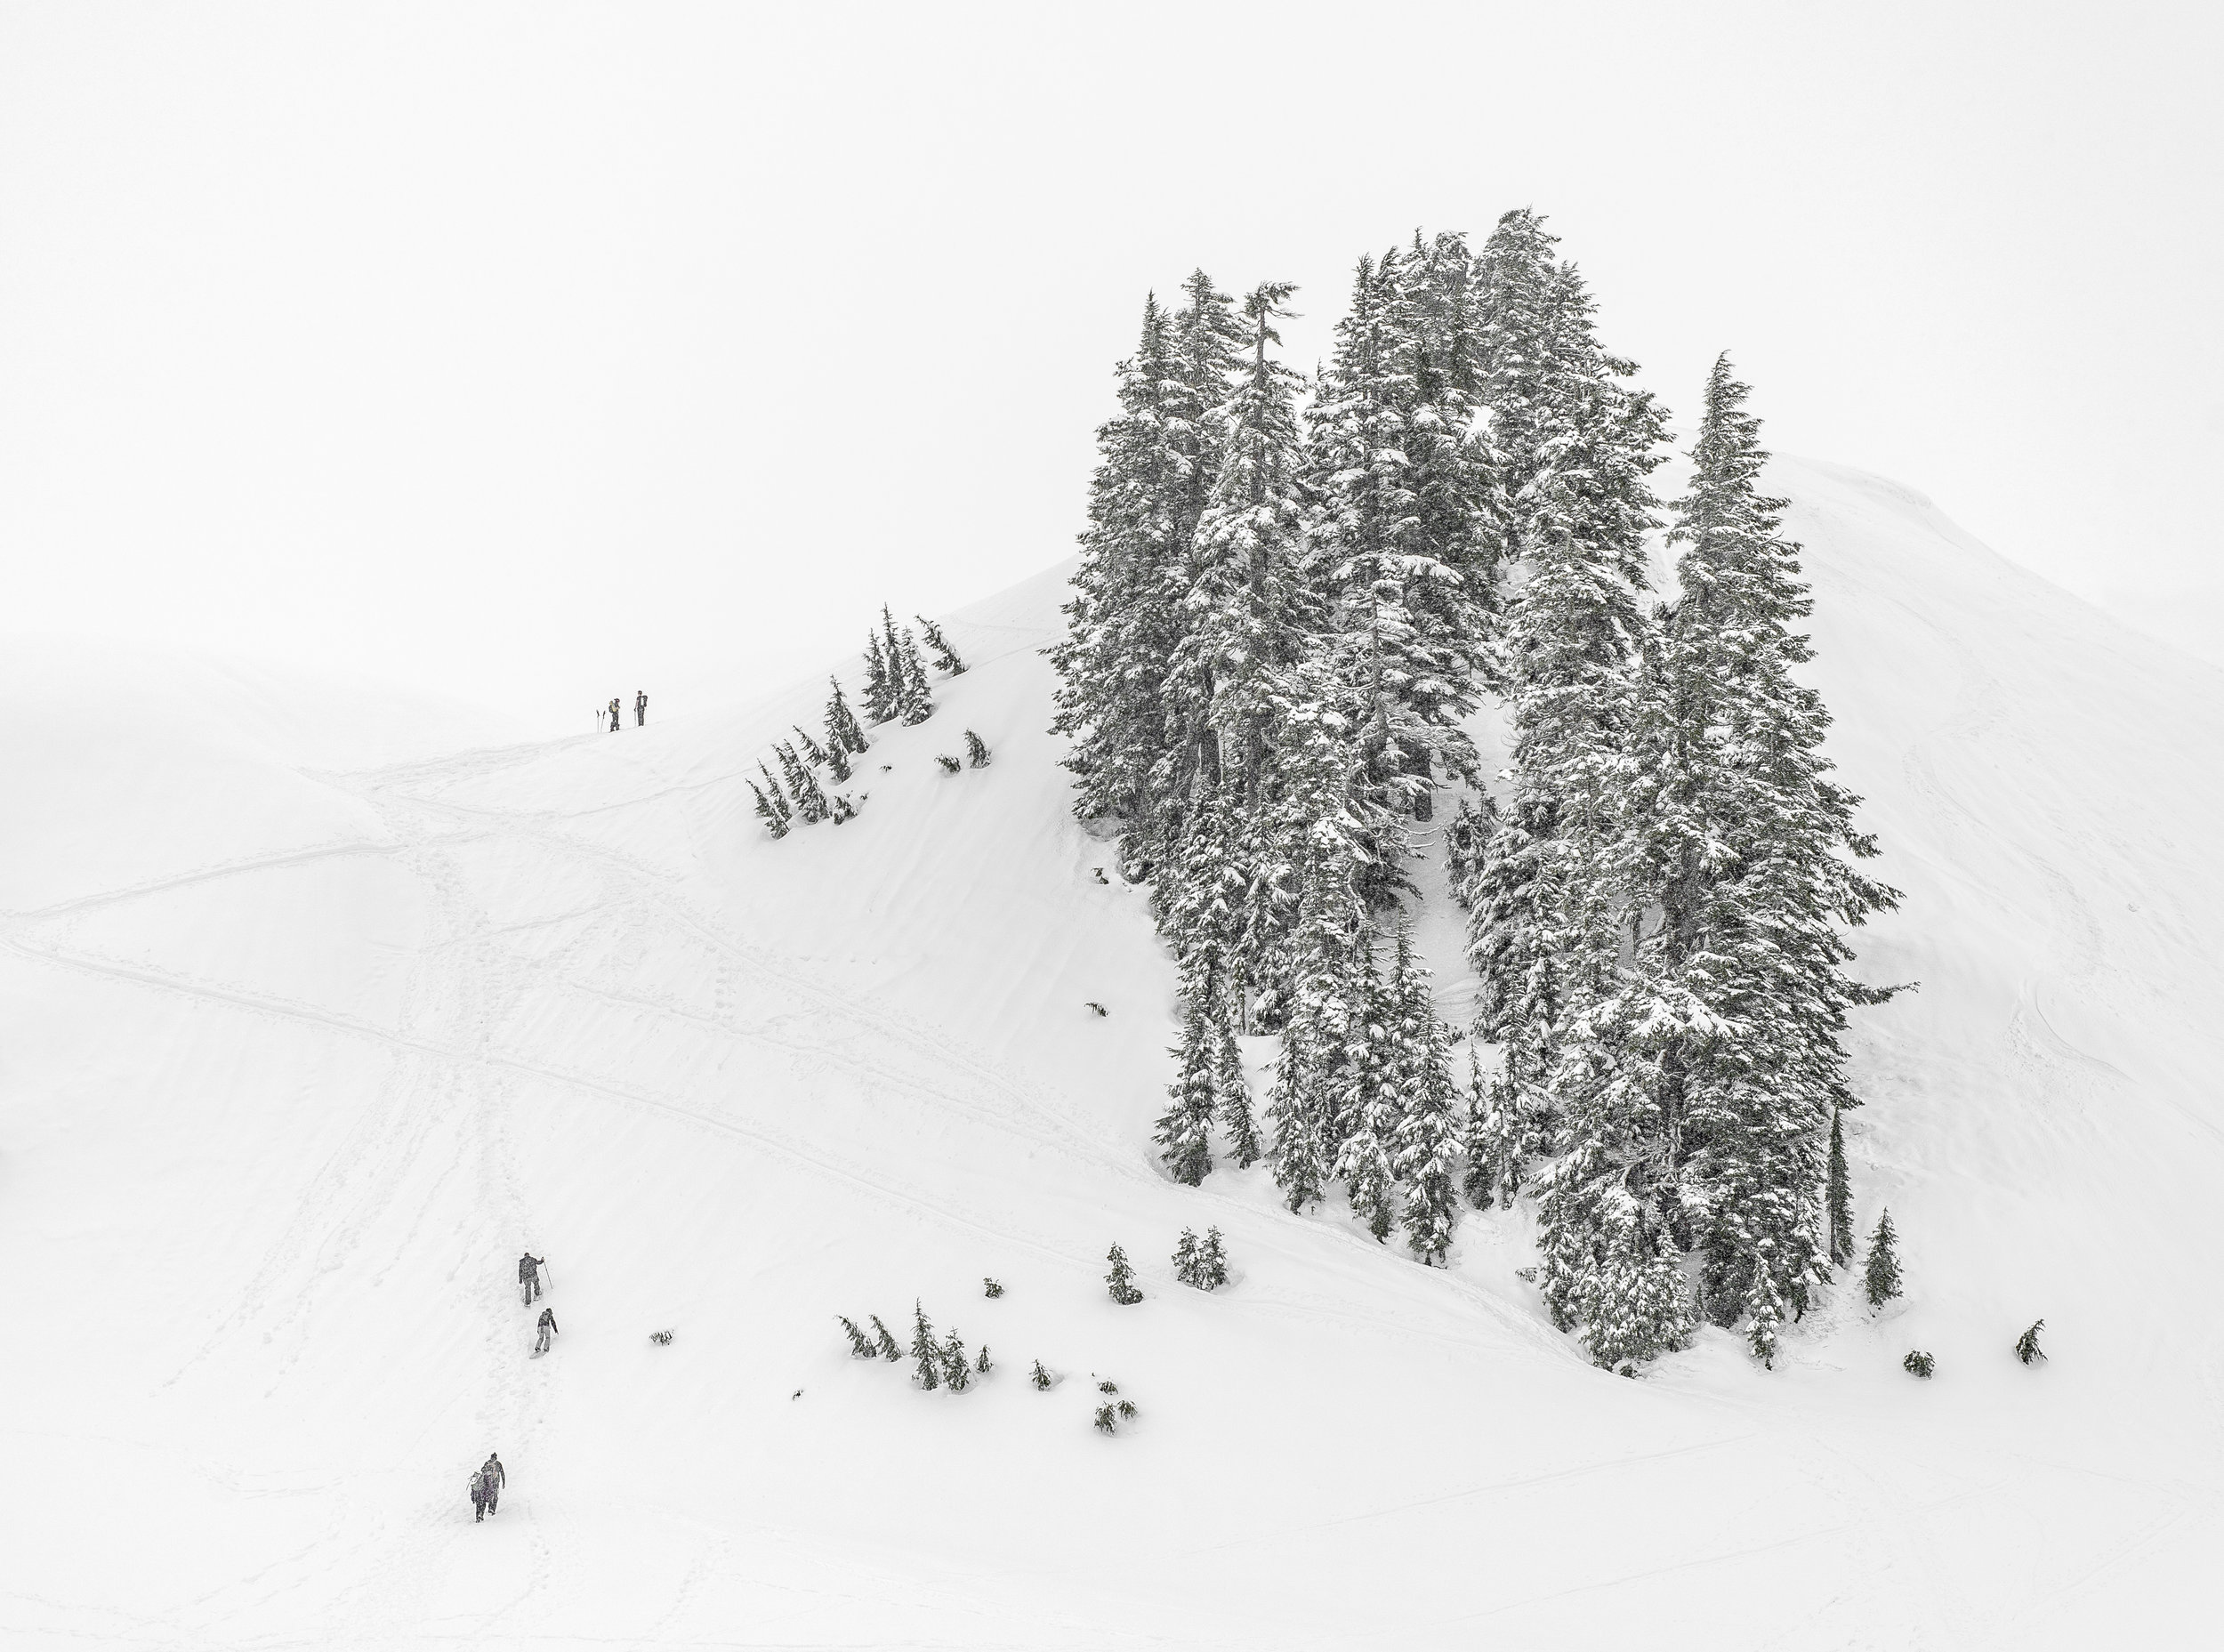 Snowshoers climb a ridge in whiteout conditions on the way to Artist Point, Mount Baker Ski Area, WA